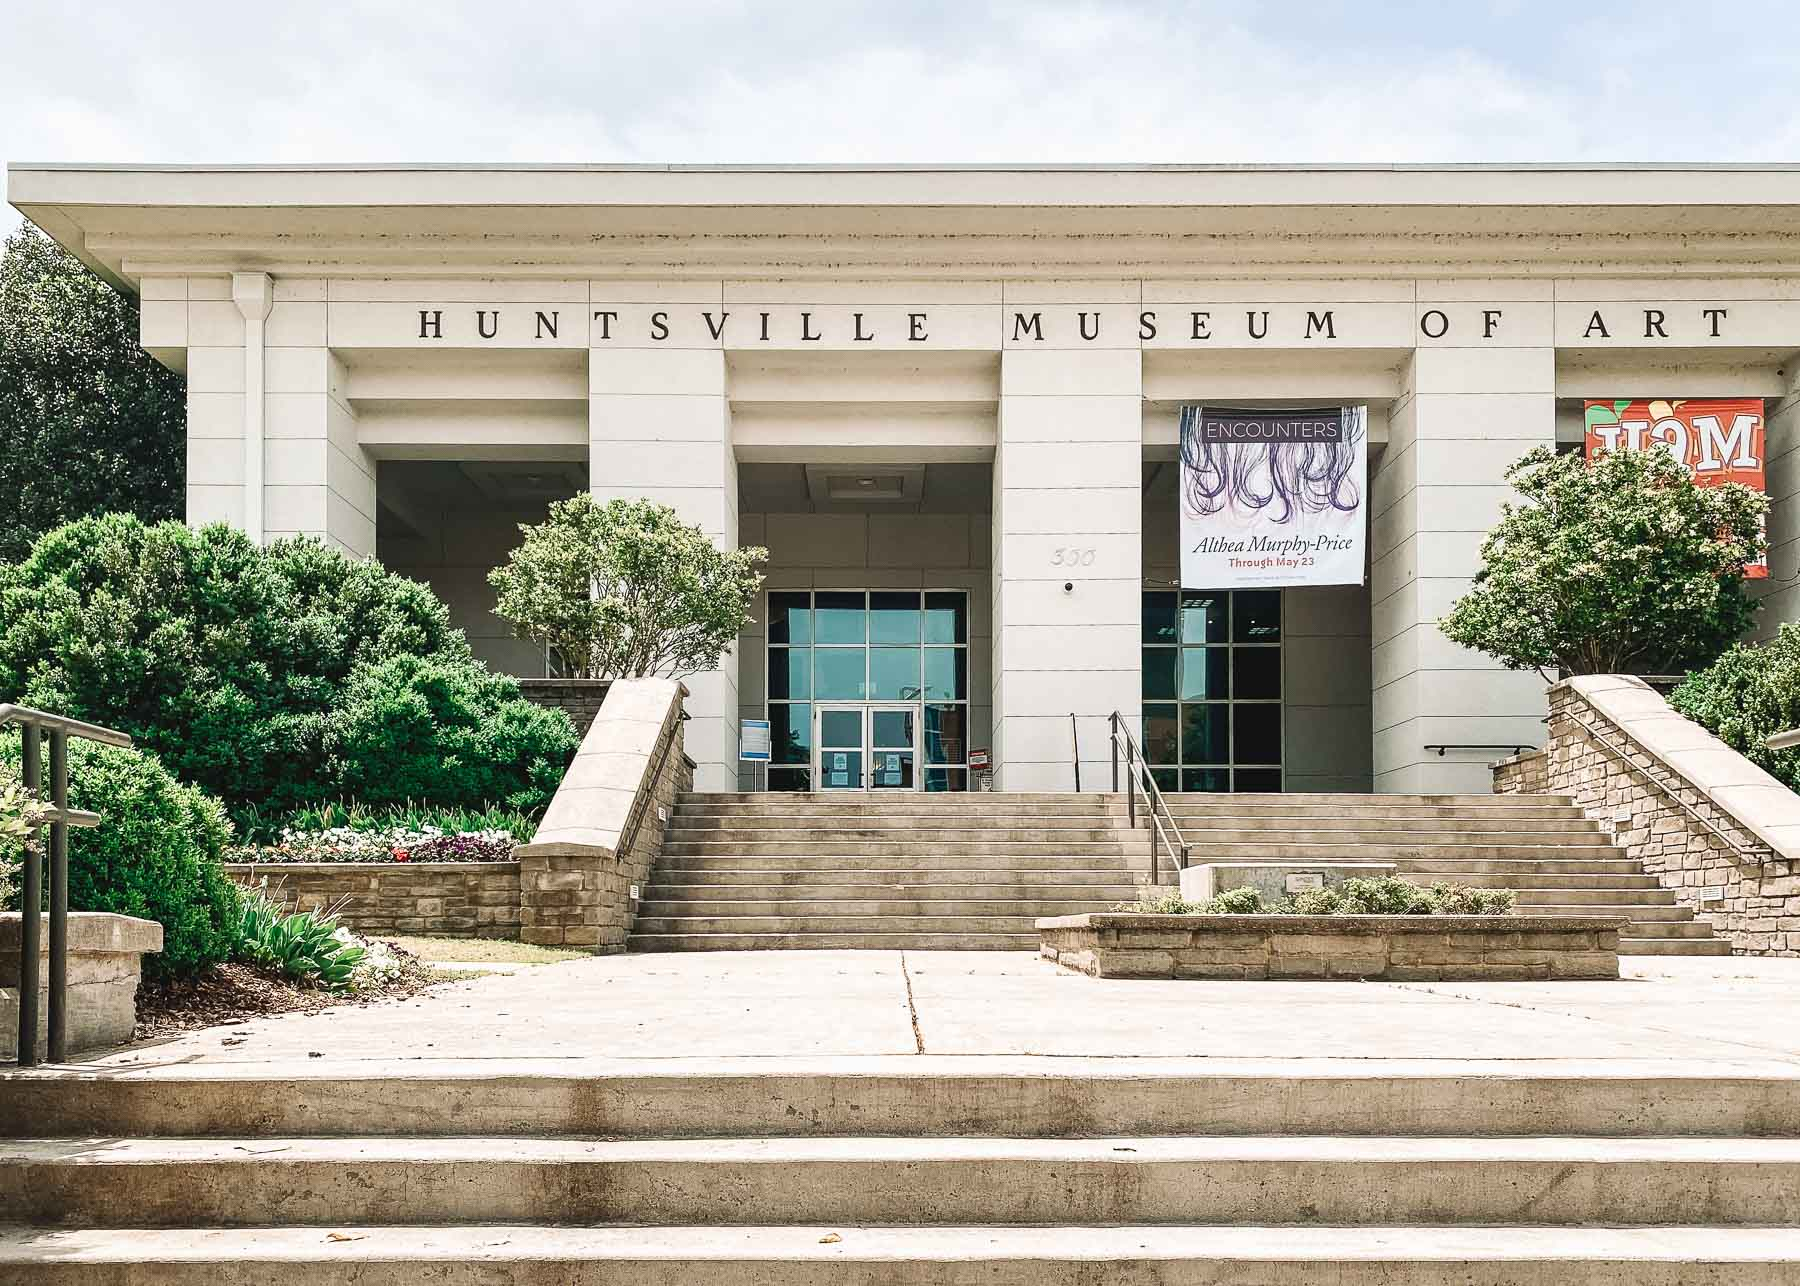 Exterior of the concrete building of the Huntsville Museum of Art. There are many. steps leading up to glass doors.